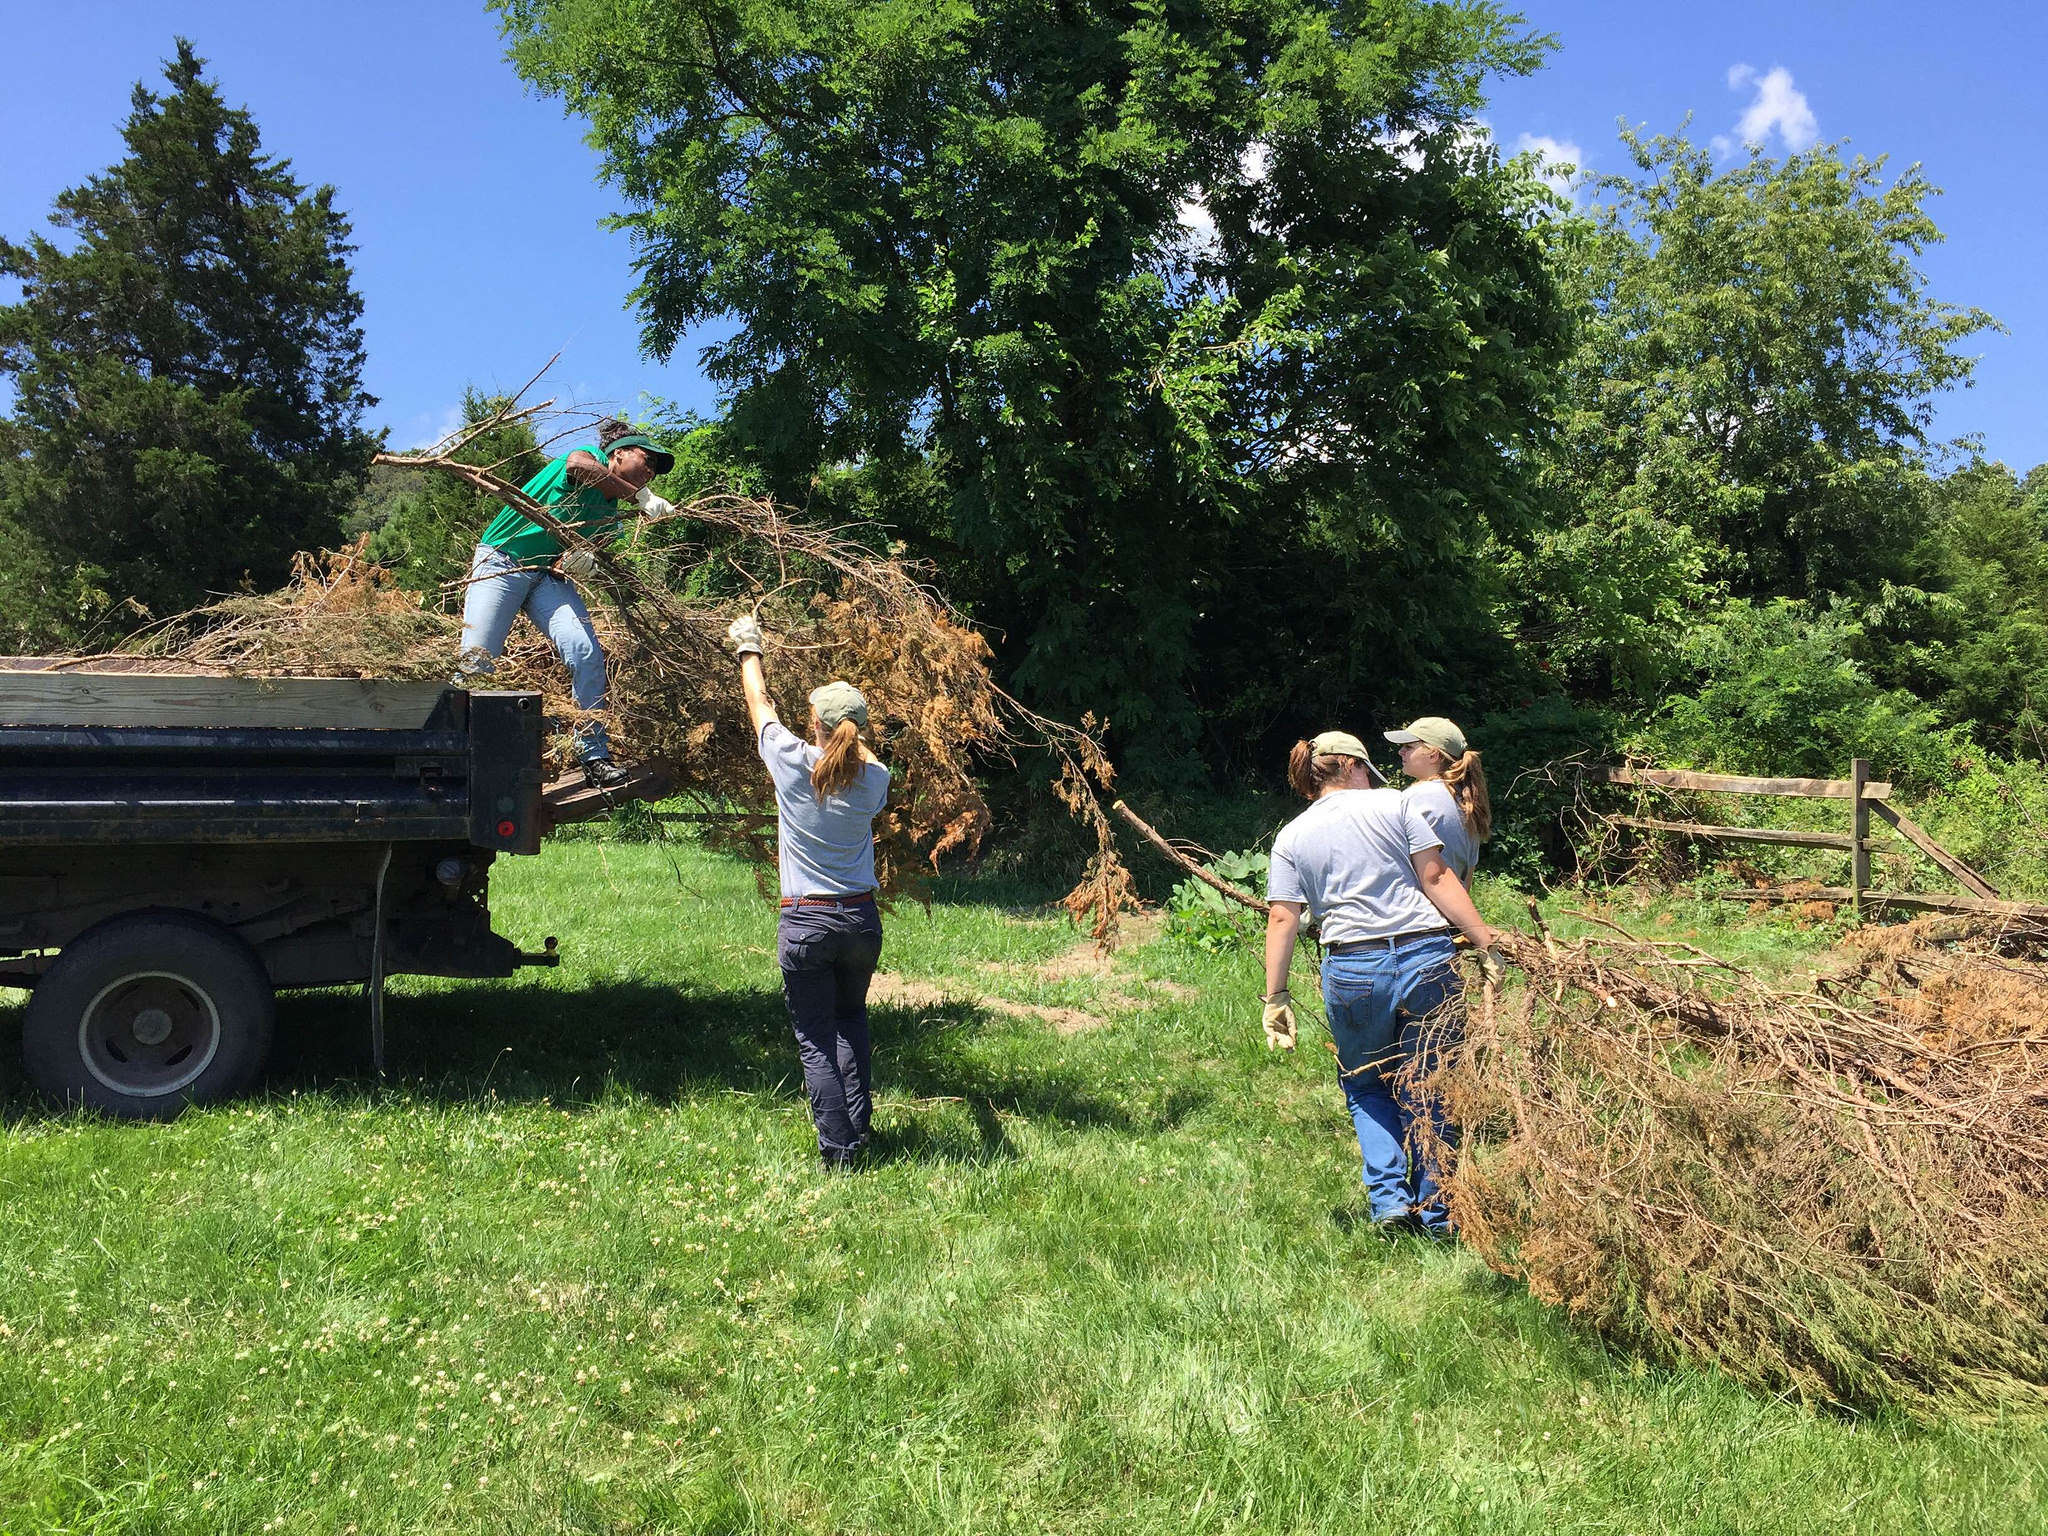 A YCC crew clears an area at Shenandoah River in preparation for building river access/